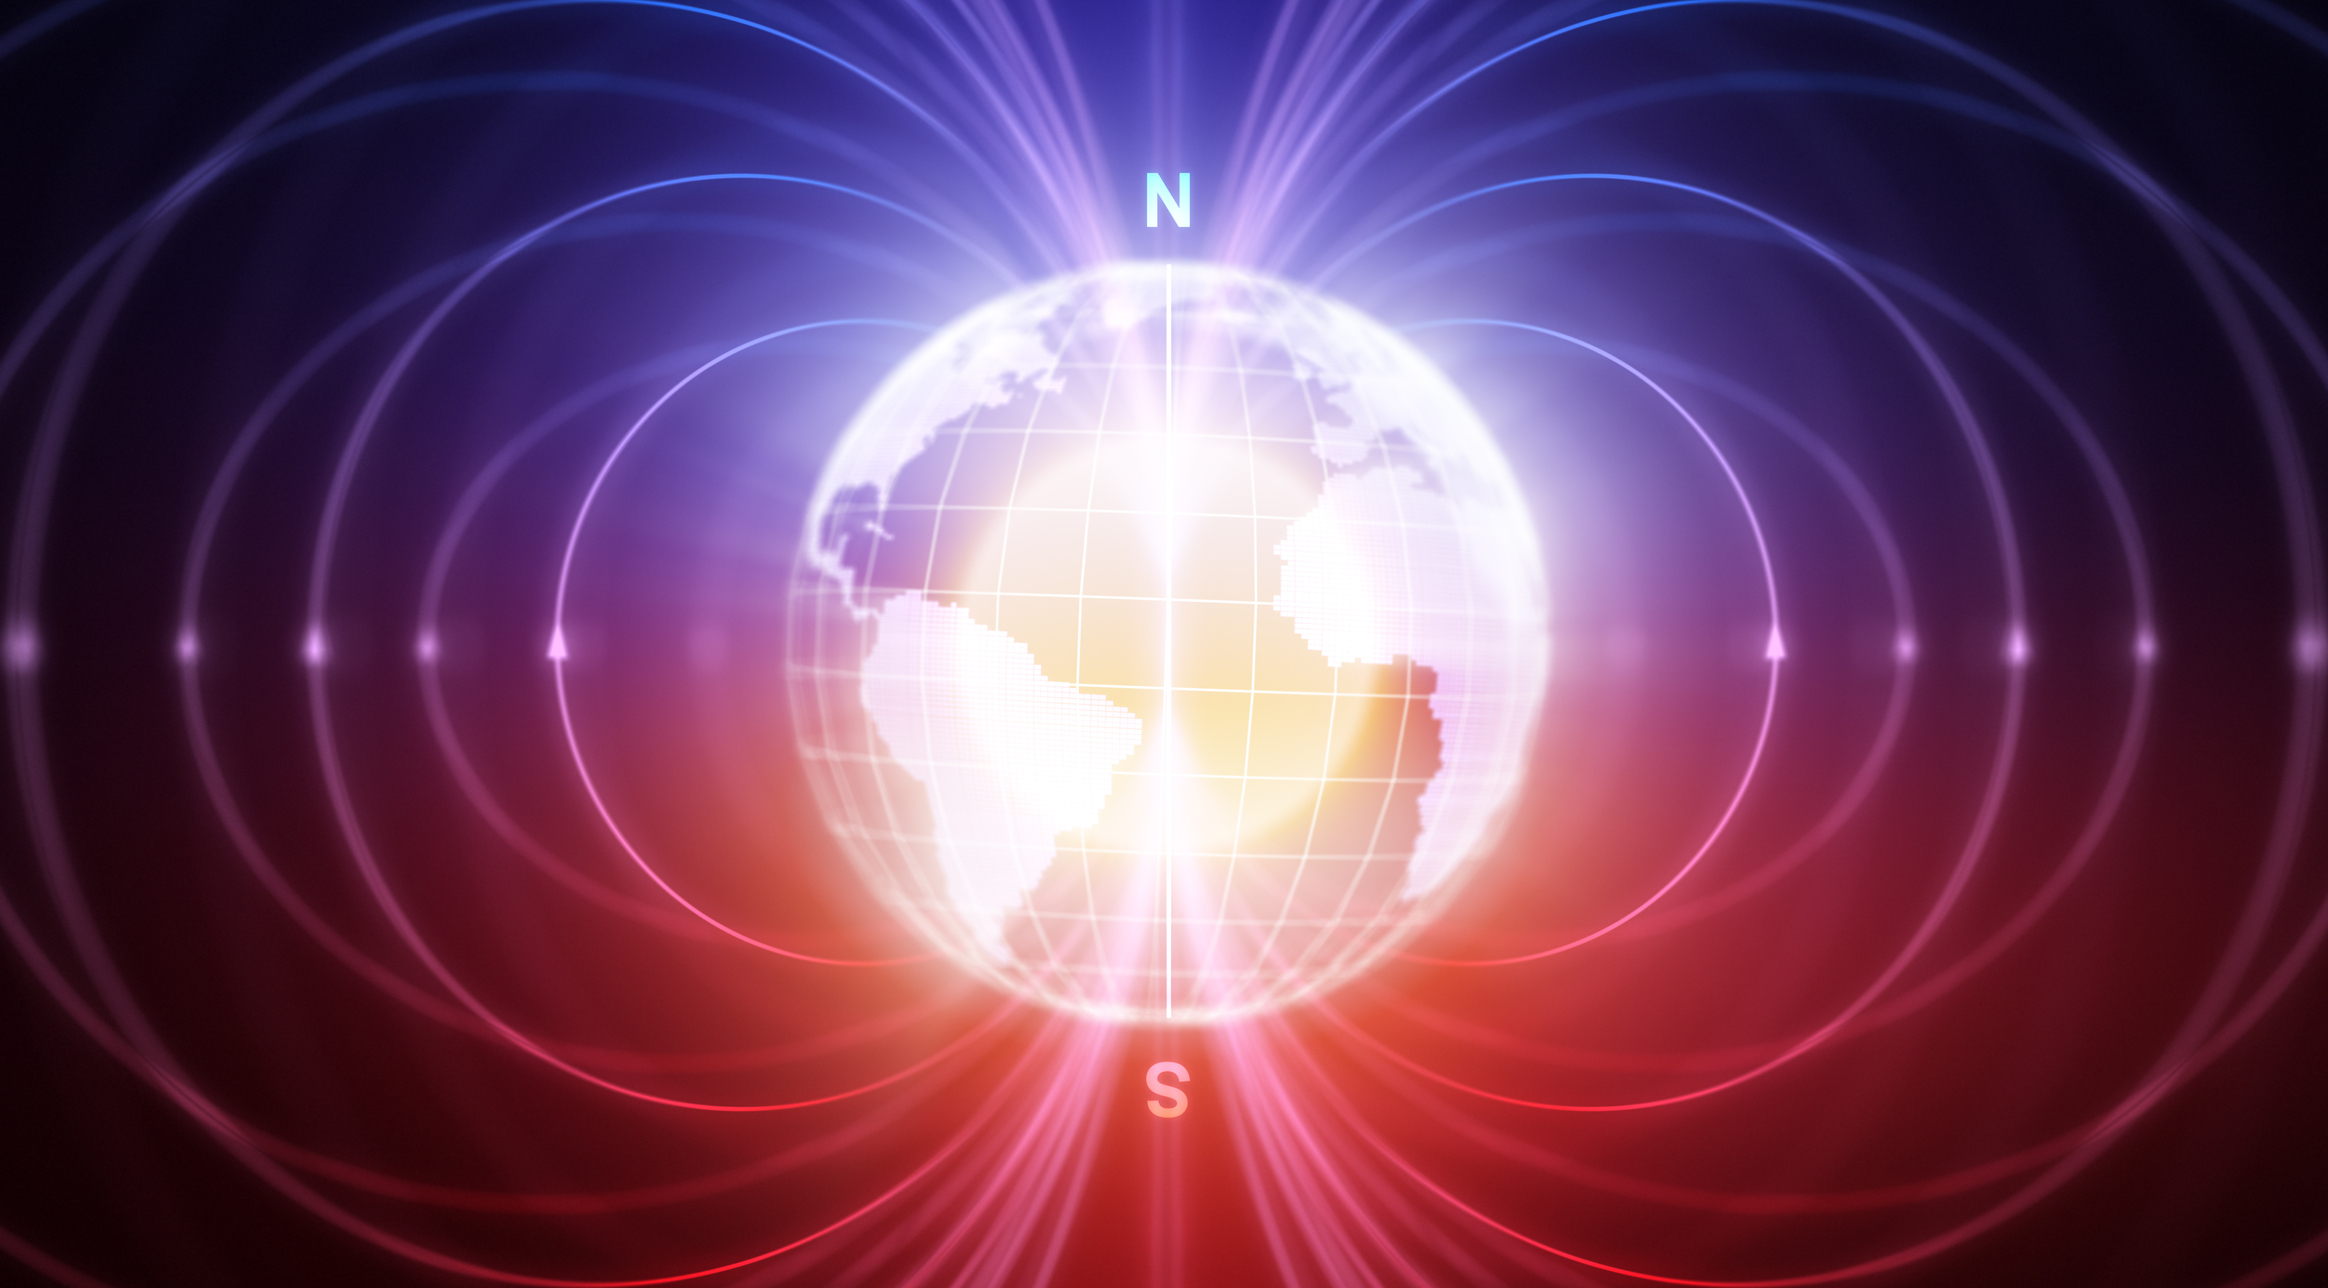 Earth's magnetic field can change direction 10 times faster than thought